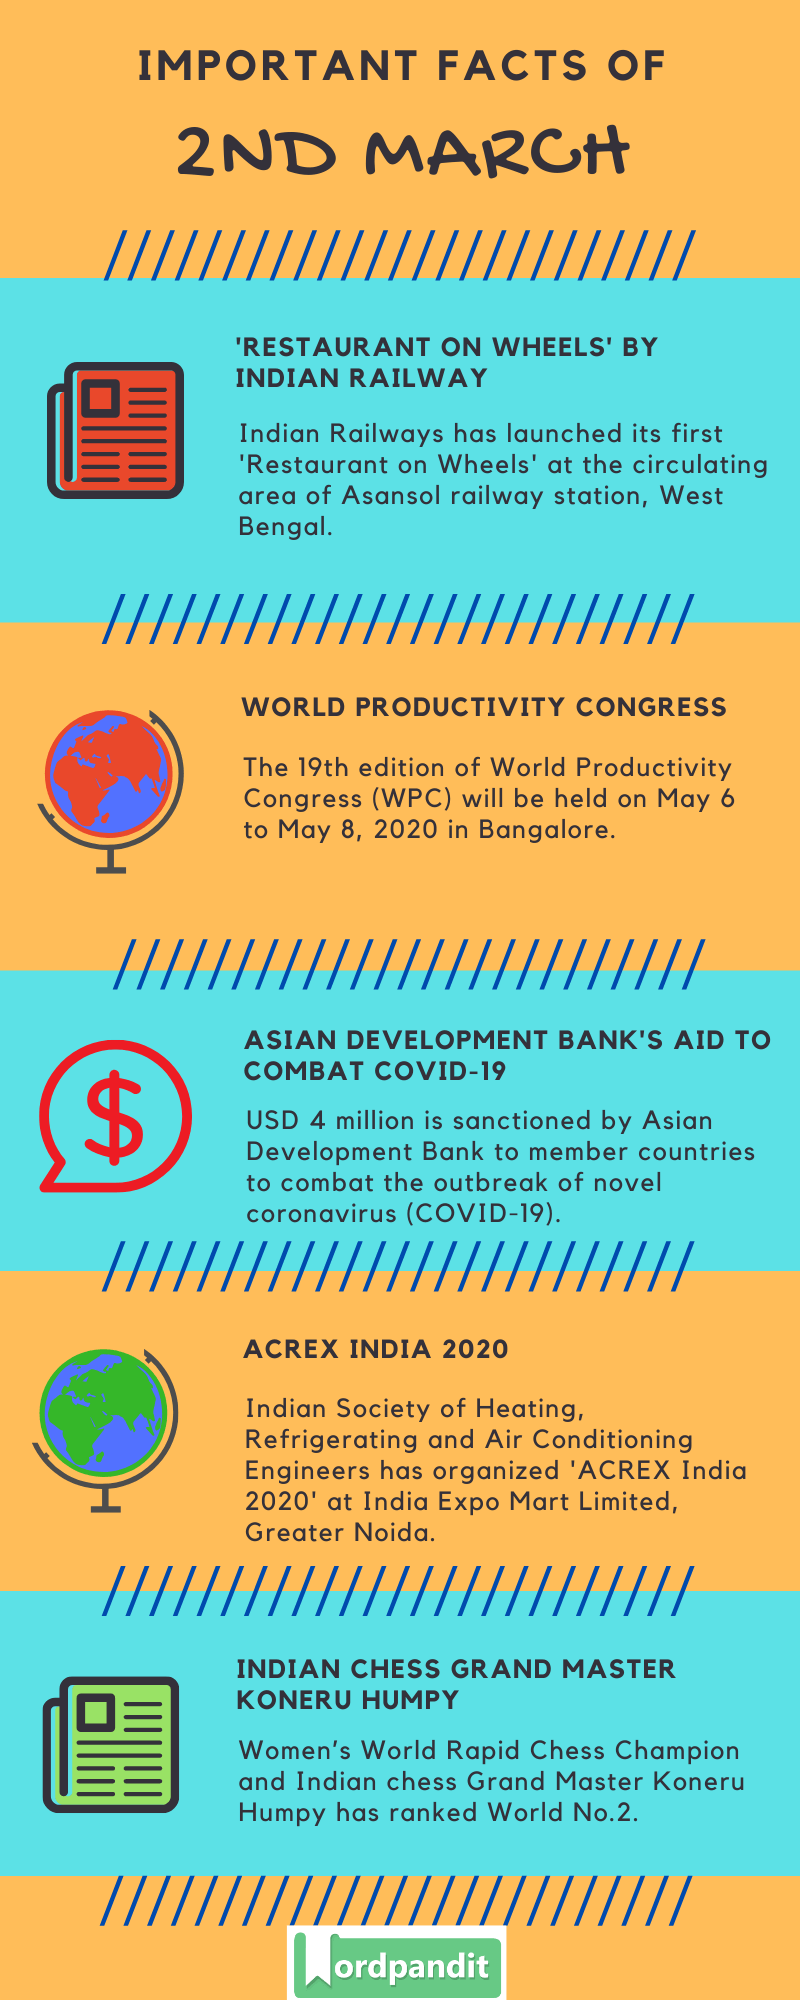 Daily Current Affairs 2 March 2020 Current Affairs Quiz 2 March 2020 Current Affairs Infographic